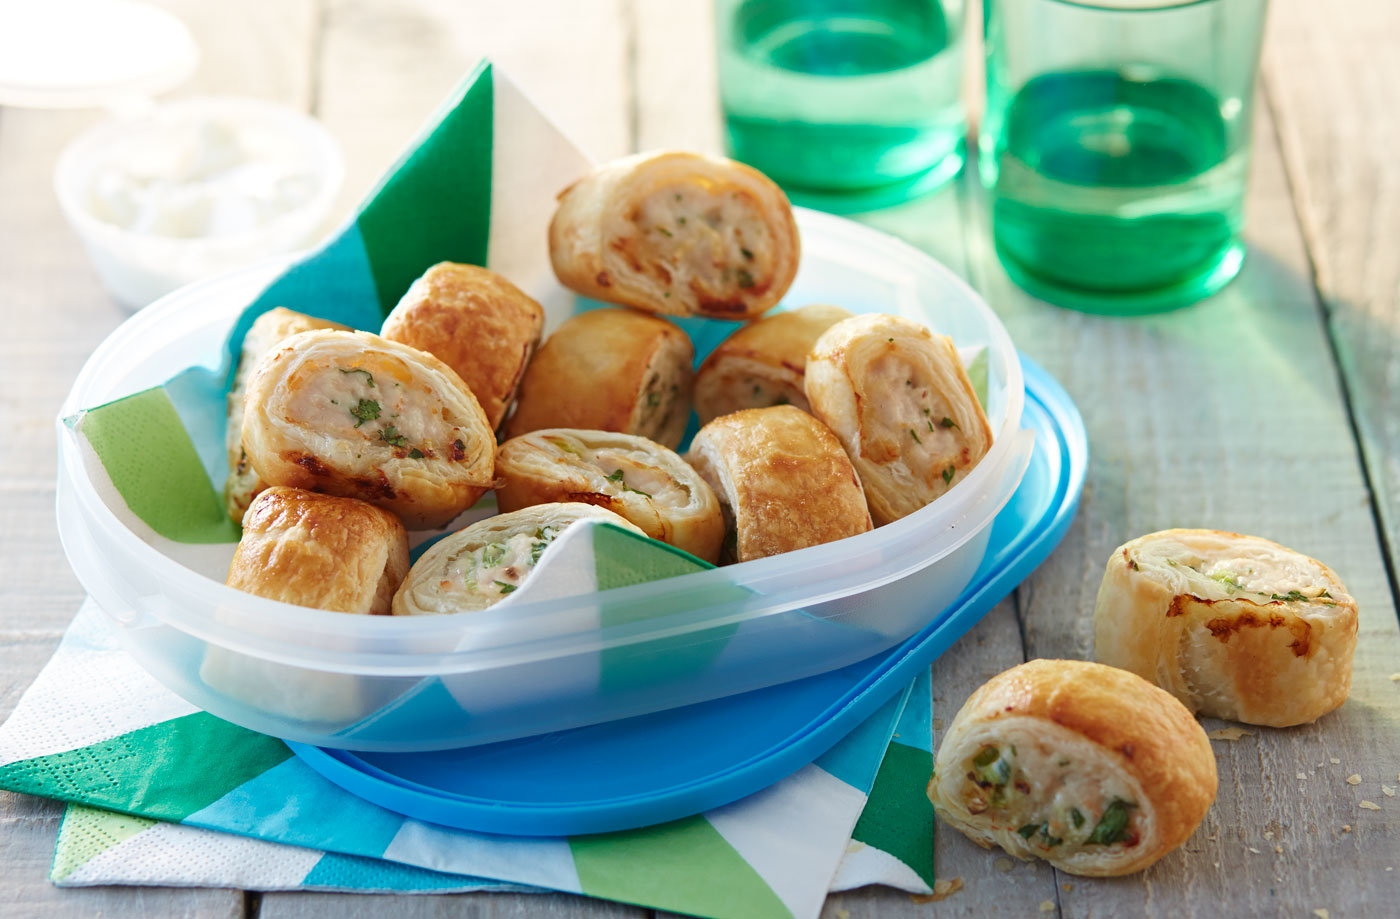 Chicken sausage rolls recipe